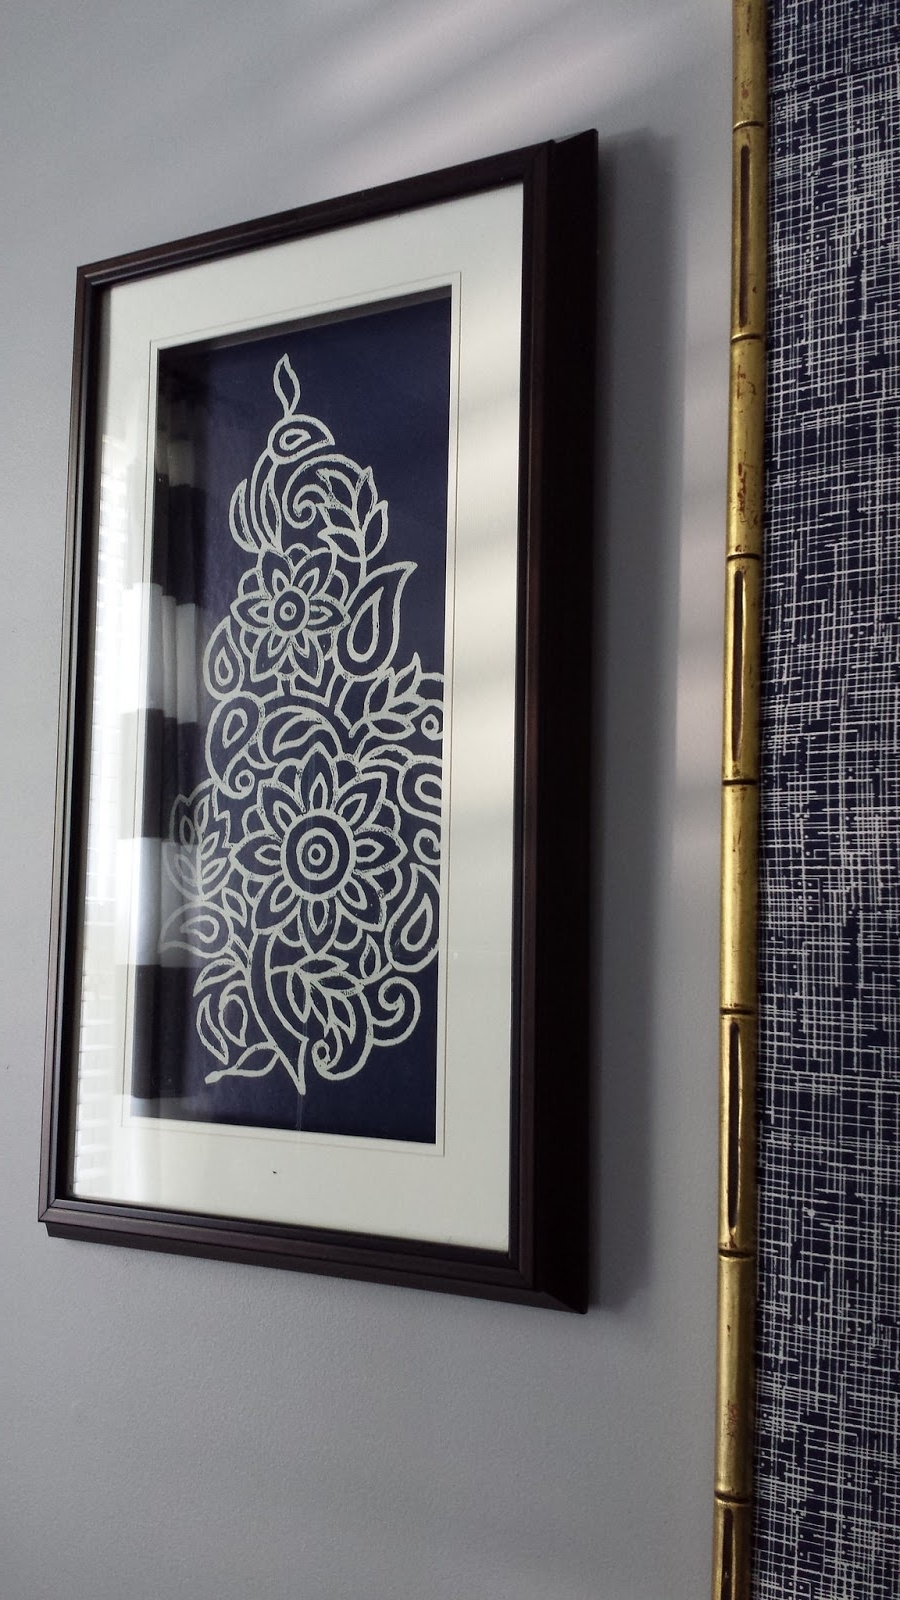 Fabric Wall Art Within Most Up To Date Focal Point Styling: Diy Indigo Wall Art With Framed Fabric (View 8 of 15)